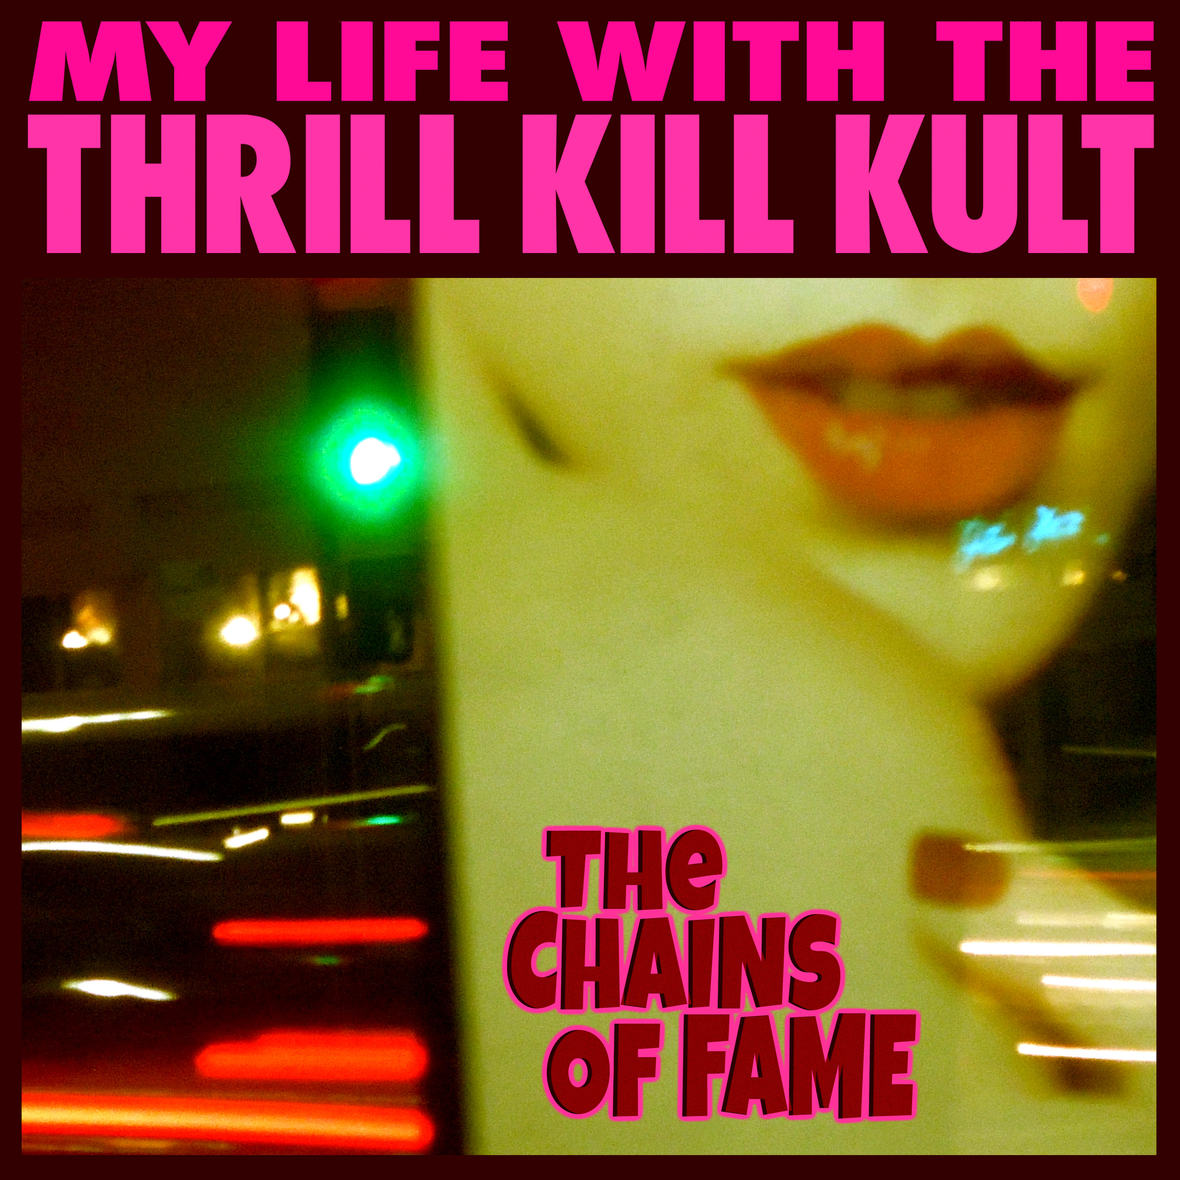 """MY LIFE WITH THE THRILL KILL KULT Reveal New Single, """"The Chains of Fame"""" Off Upcoming LP"""